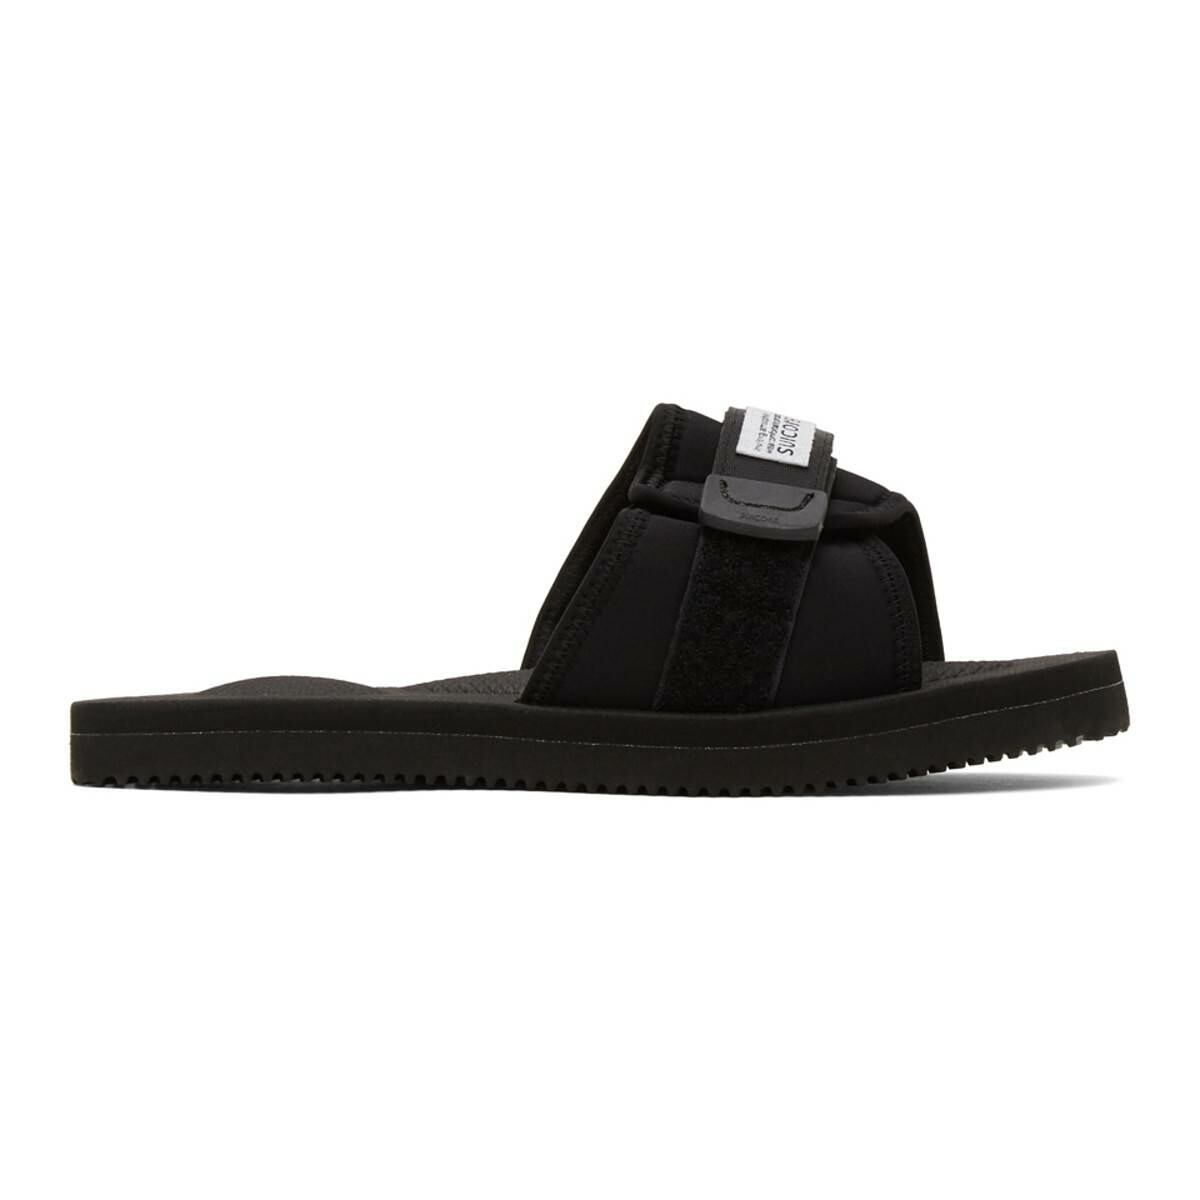 Suicoke Black Padri Sandals Ssense USA MEN Men SHOES Mens SANDALS